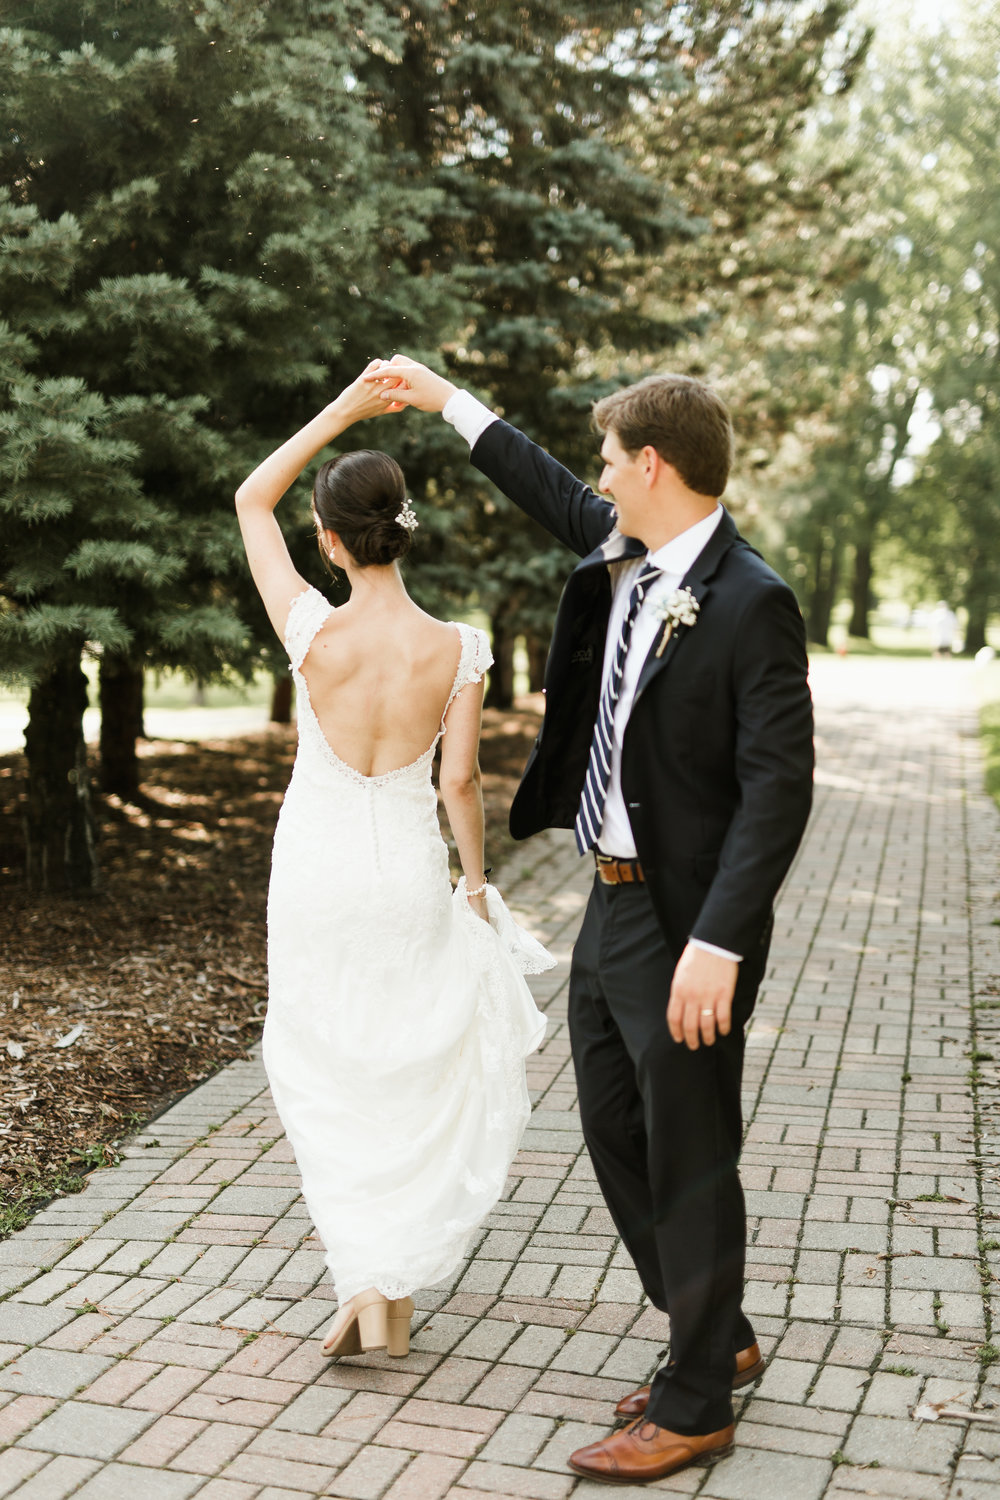 - What's your approach on a wedding day?We want to complement your wedding, NOT complicate it. We are there to capture your day!We also hope to make you feel comfortable,confident and thinking